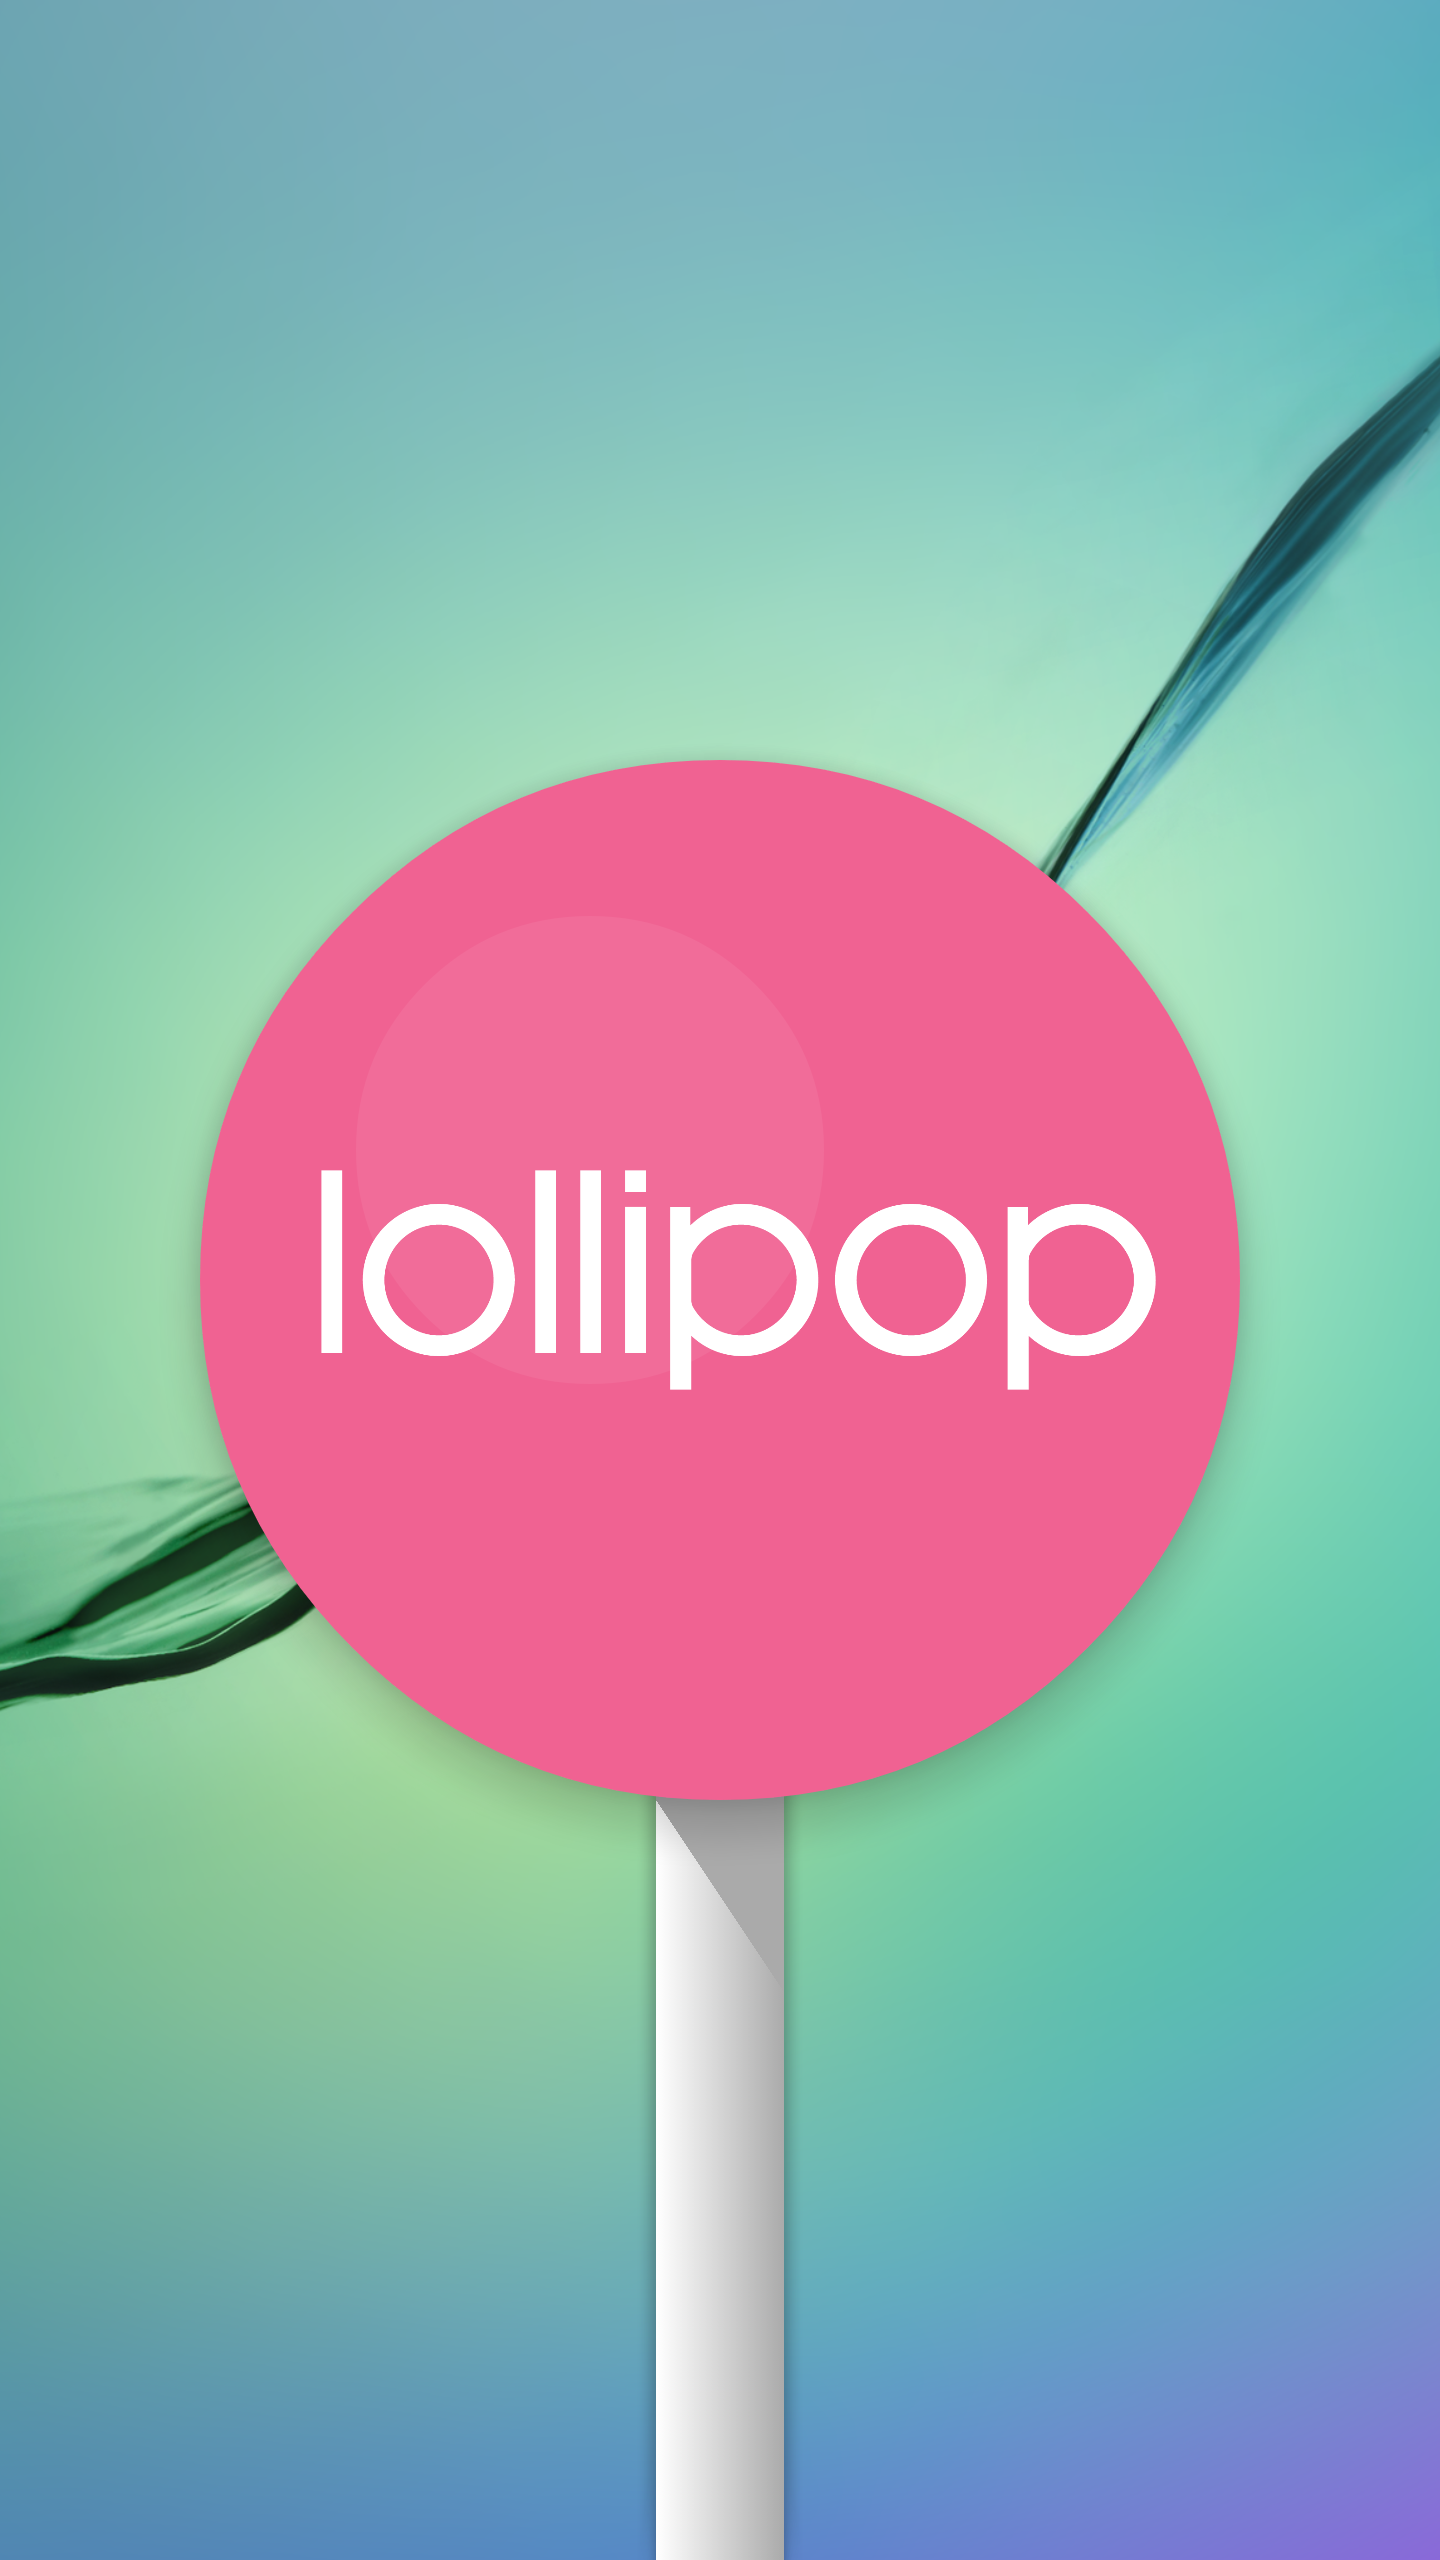 The hidden lollipop